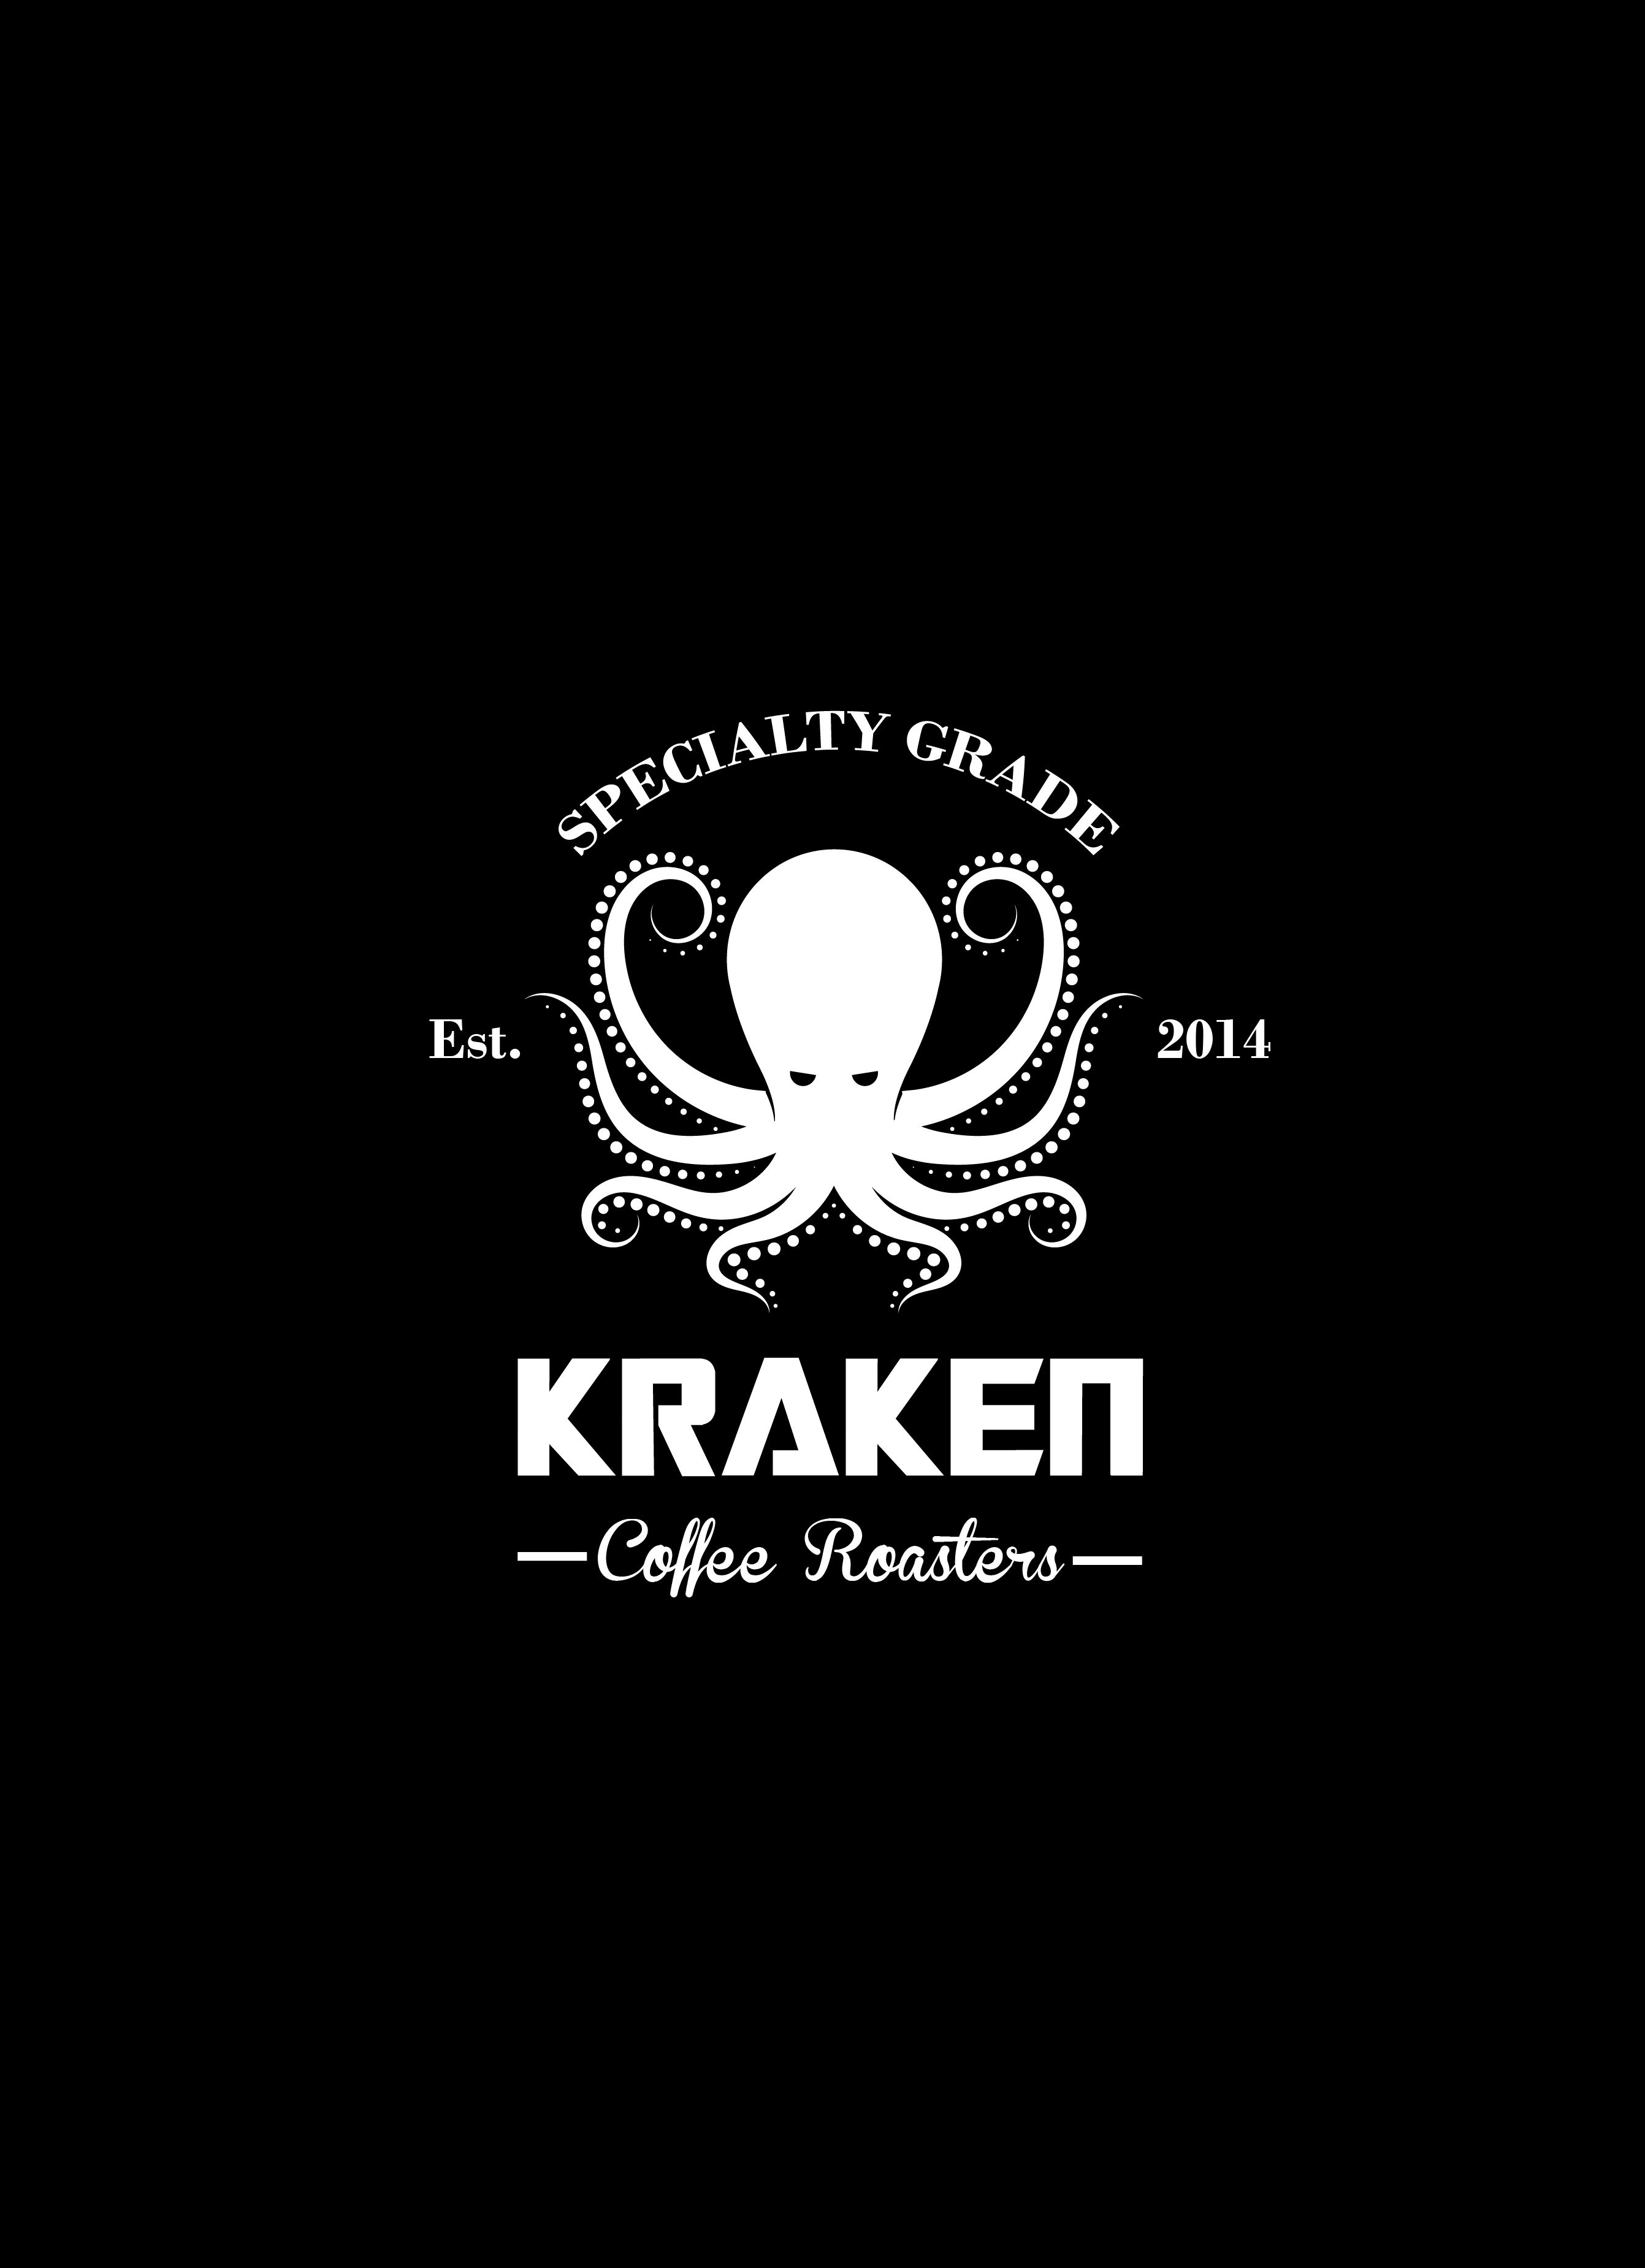 Pin by grudge coffee roasters on kraken coffee logo pinterest draw logo coffee logo kraken logo animal logo company logo business cards fj cruiser octopuses barber octopus monkey cafe logo lipsense business reheart Choice Image